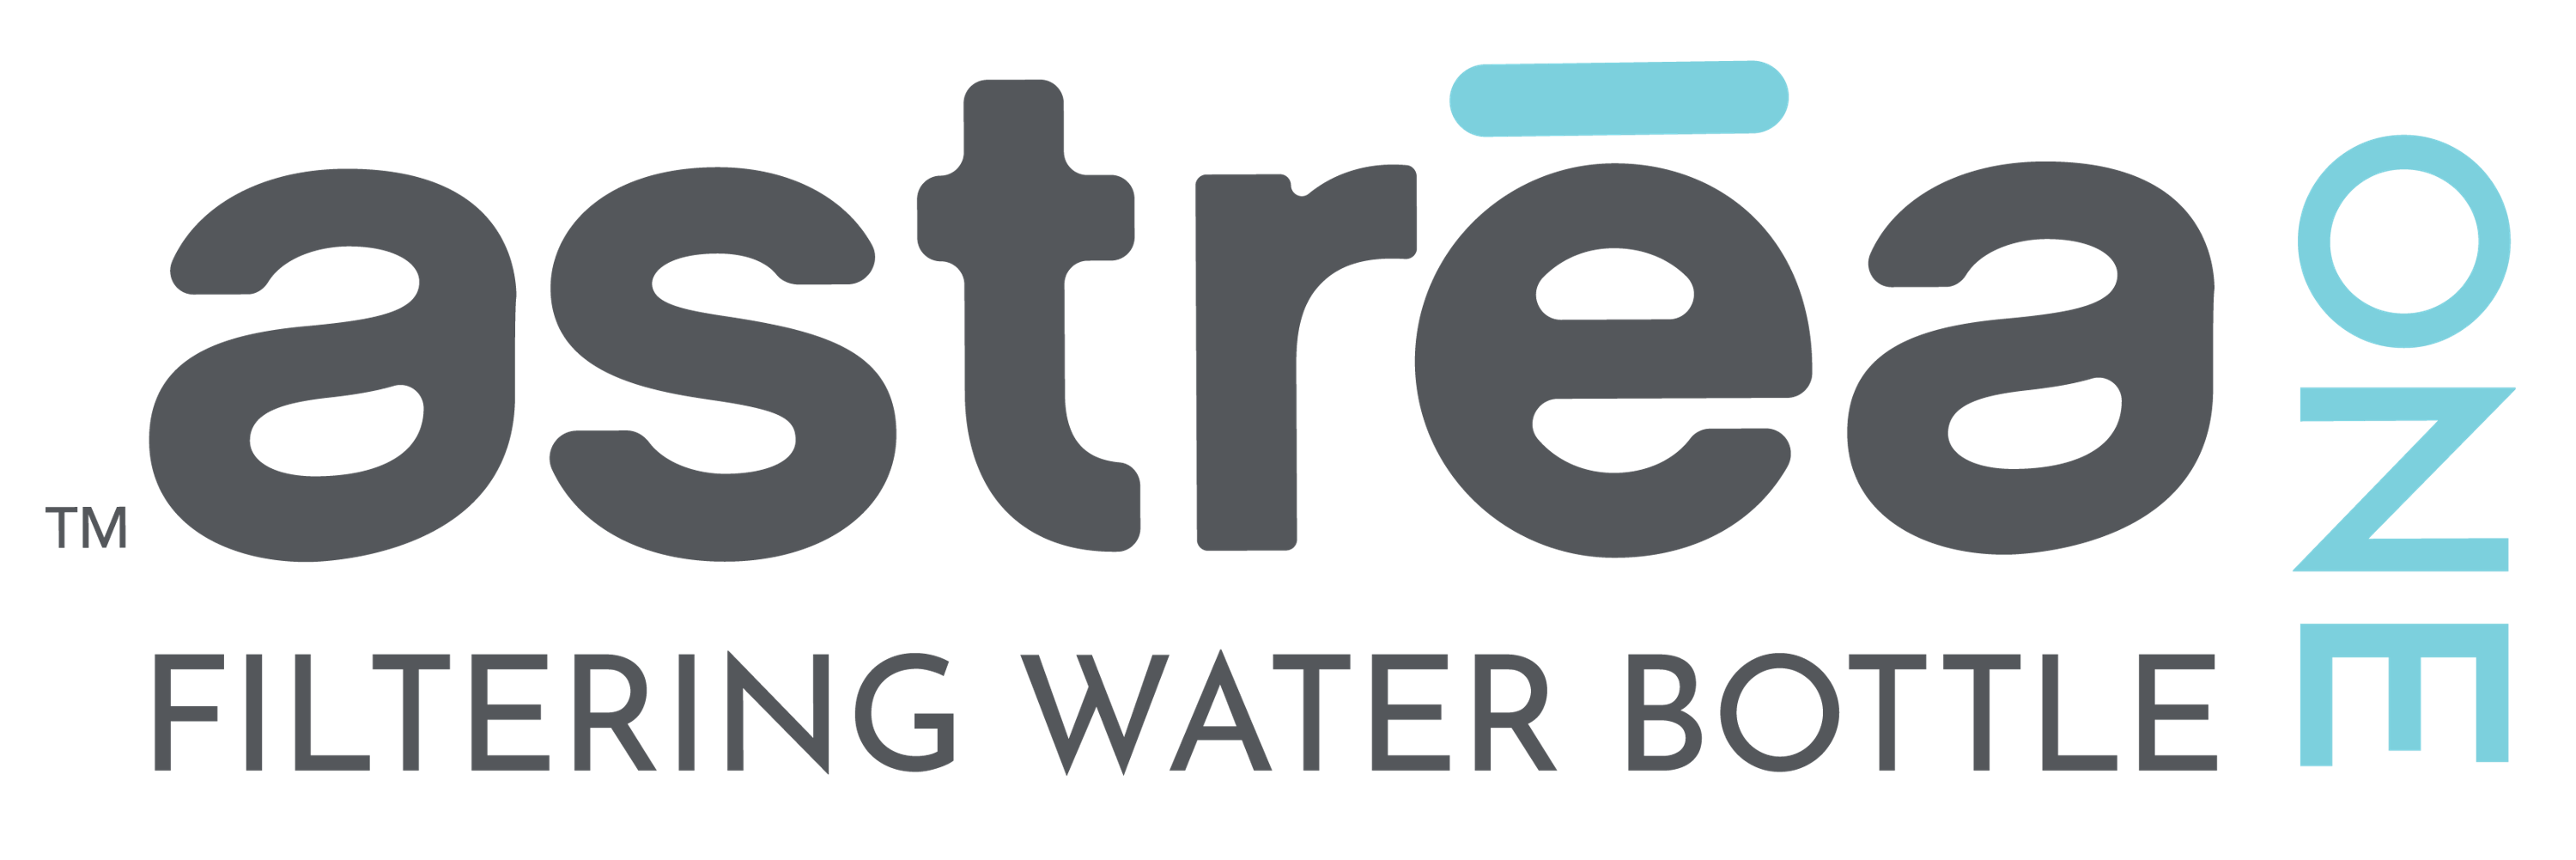 astrea water bottle with filter